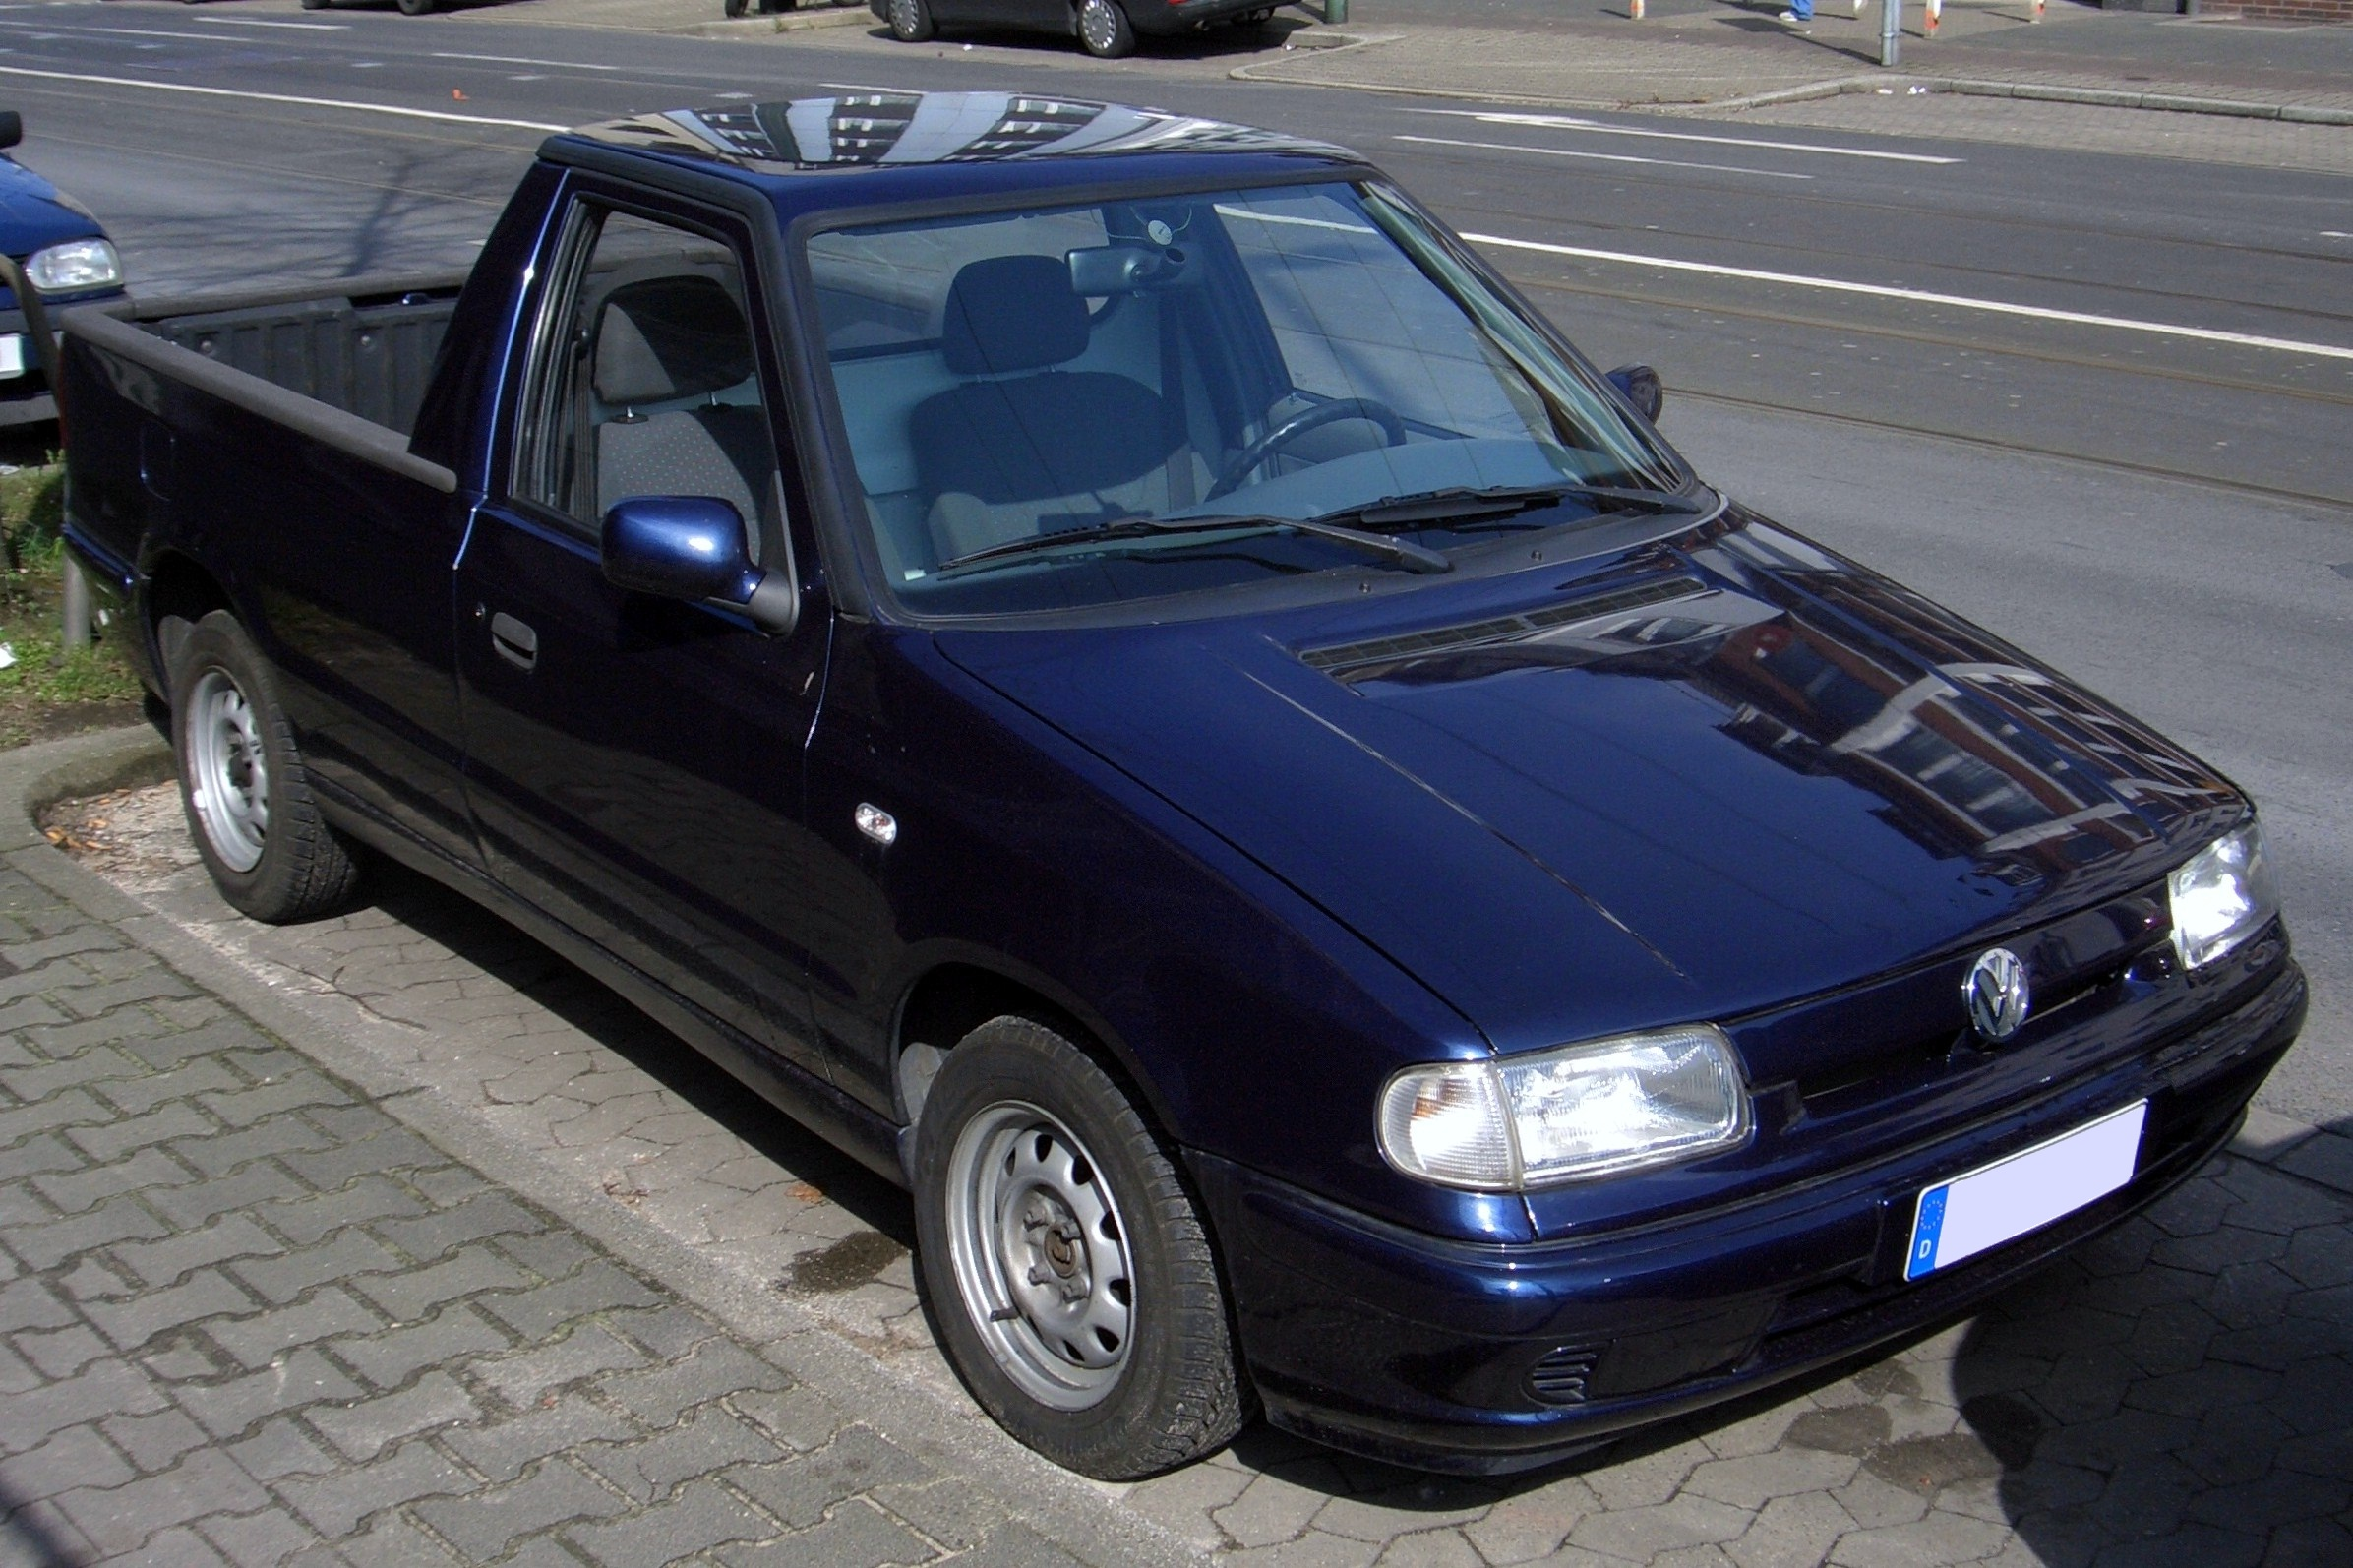 file vw caddy 9u pick up 1996 2000 frontright 2008 03 23 wikimedia commons. Black Bedroom Furniture Sets. Home Design Ideas